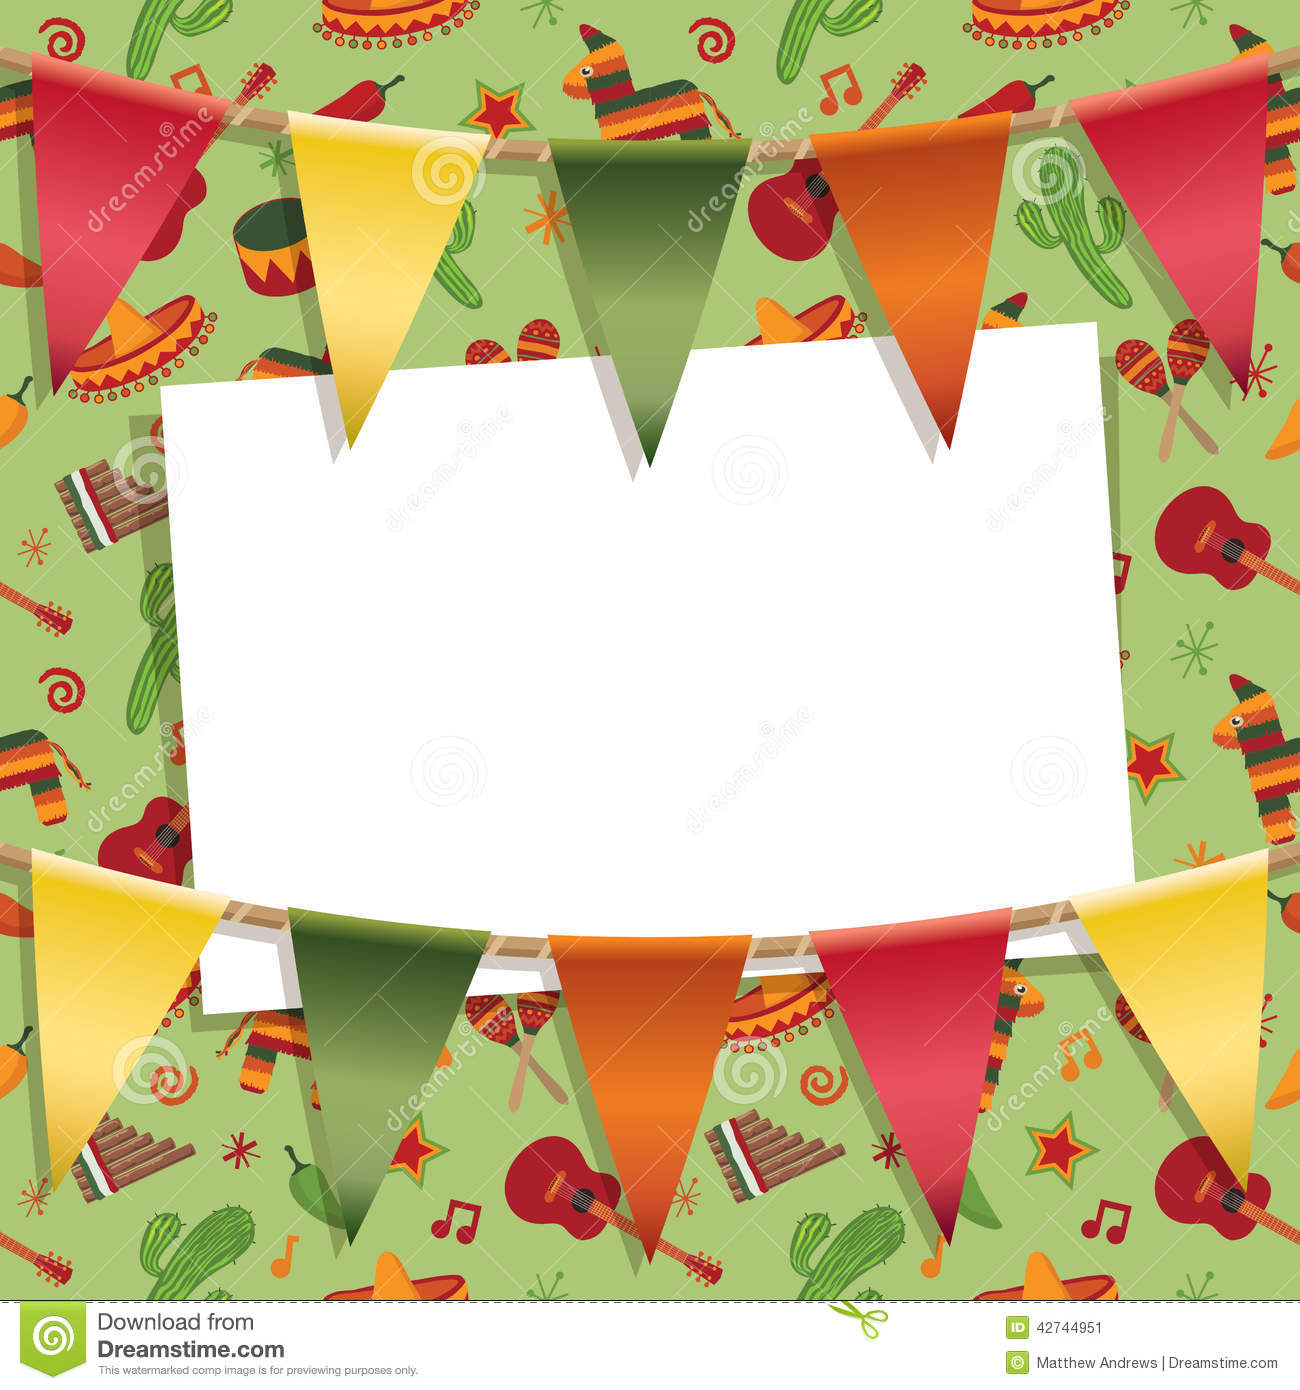 Stock Illustration Mexican Party Card Decoration Background Pattern Bunting Your Text Clipping Path Transparencies Image42744951 on fiesta bunting clip art